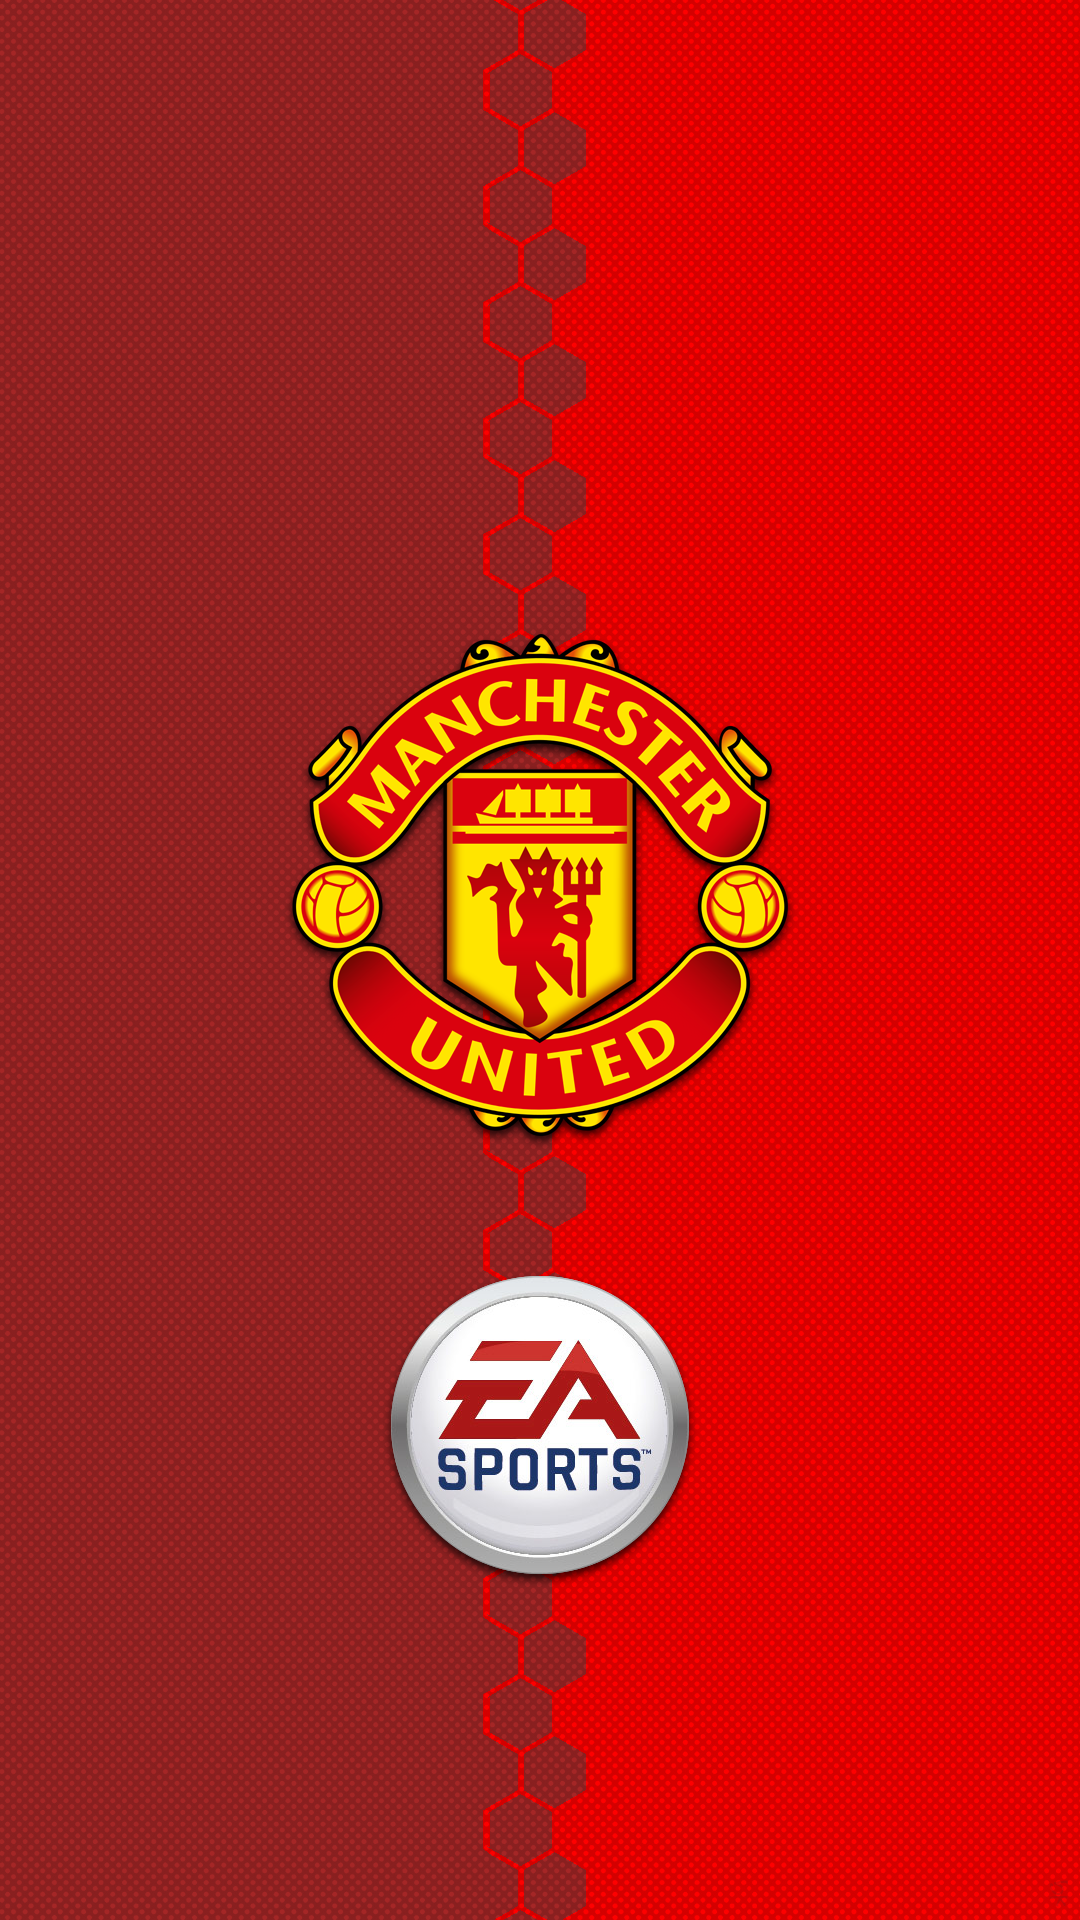 Iphone 67 plus wallpaper request thread page 246 macrumors forums manchester united ea sportsg biocorpaavc